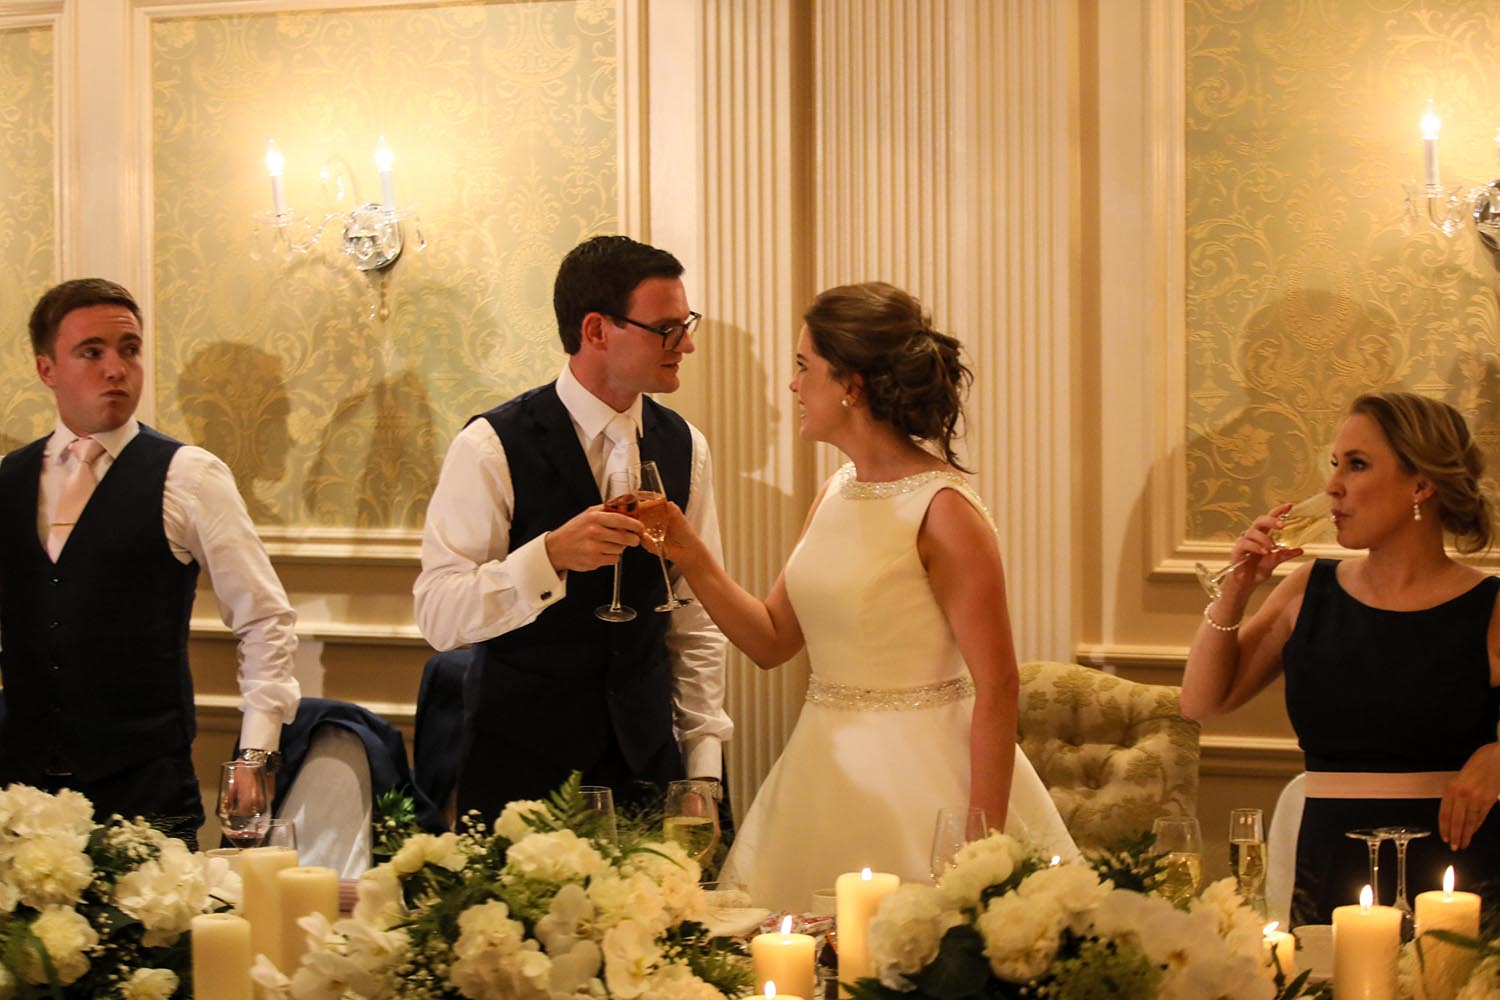 Couple toasting each other on their wedding day